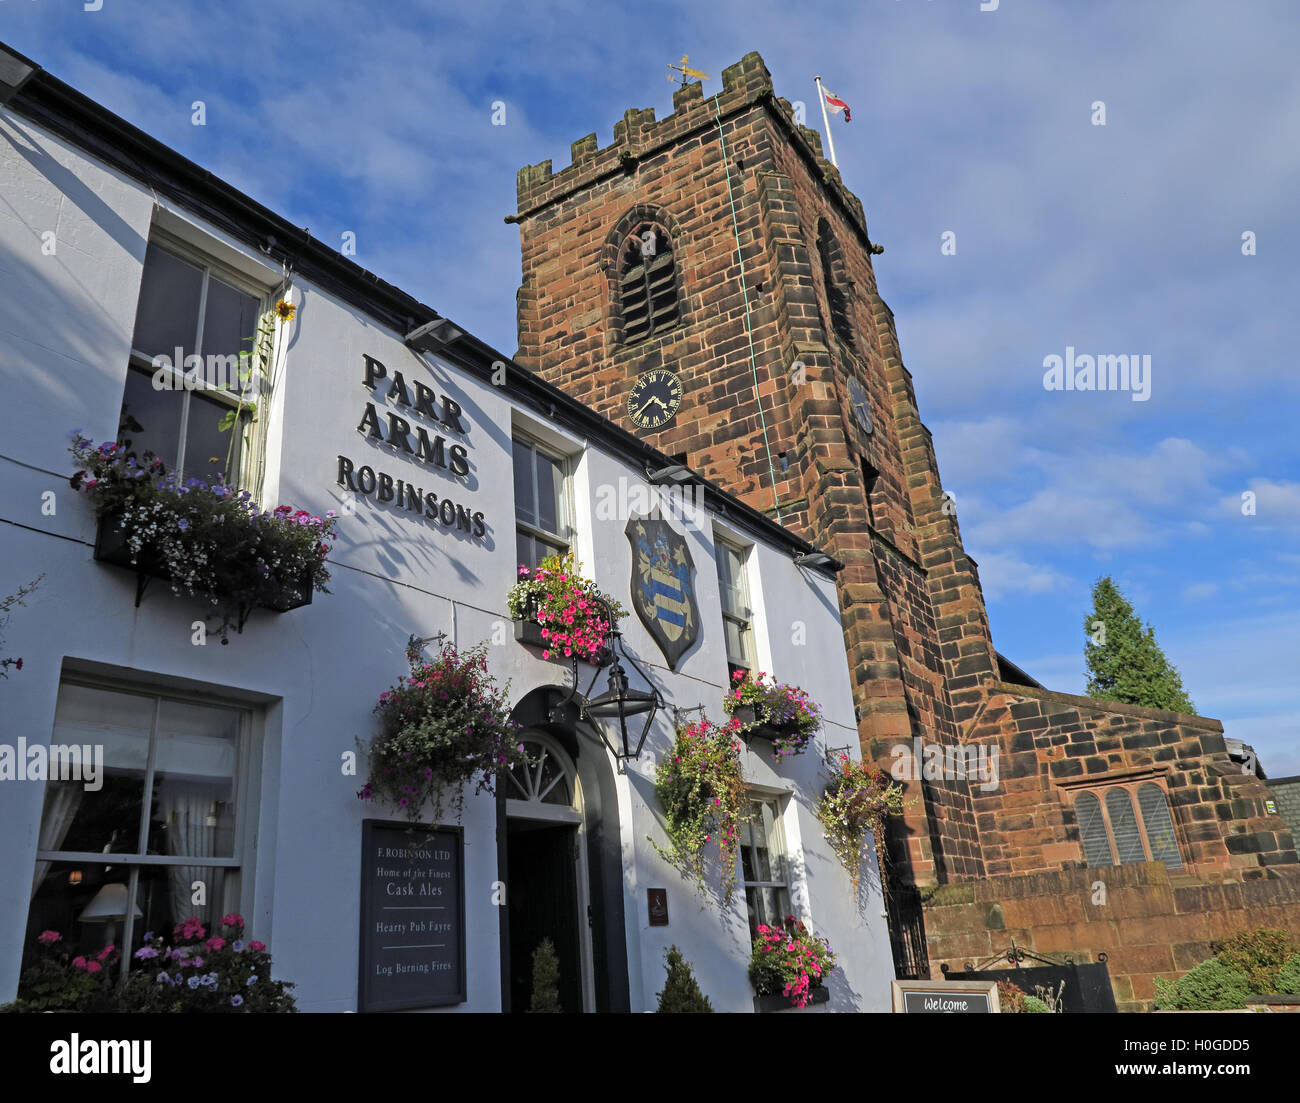 Parr Arms & Church, Grappenhall Village, Warrington, Cheshire, England, WA4 3EP - Stock Image